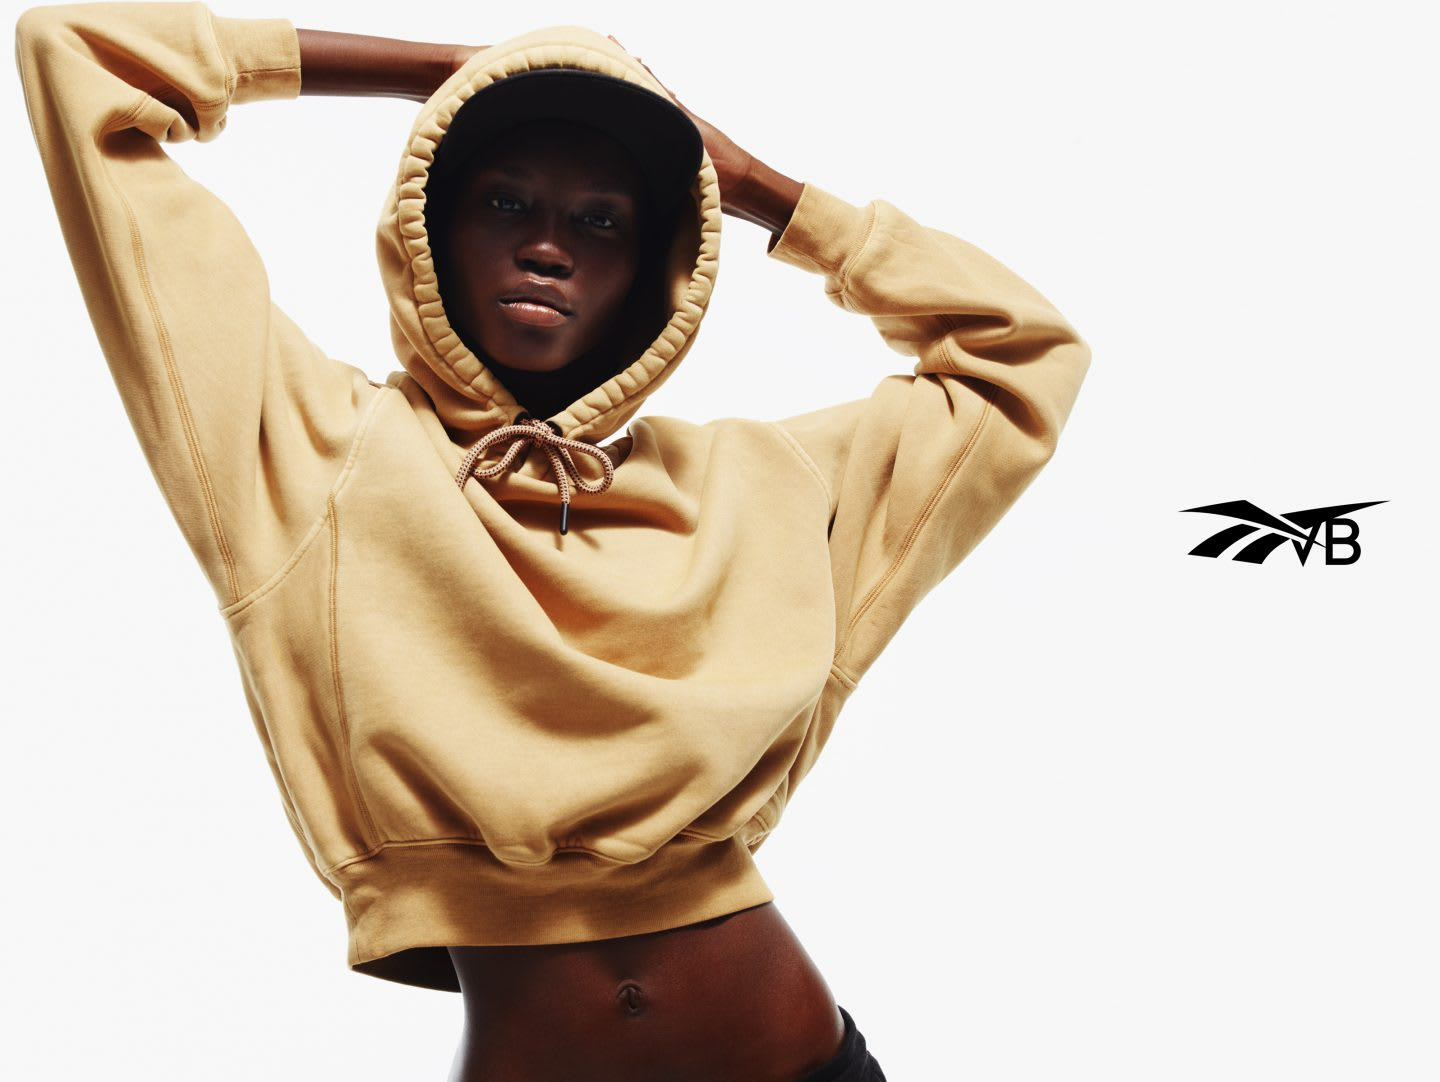 Black model wearing VB x Reebok cropped yellow hoodie from streetwear collection, Victoria Beckham, Reebok, collaboration, fashion